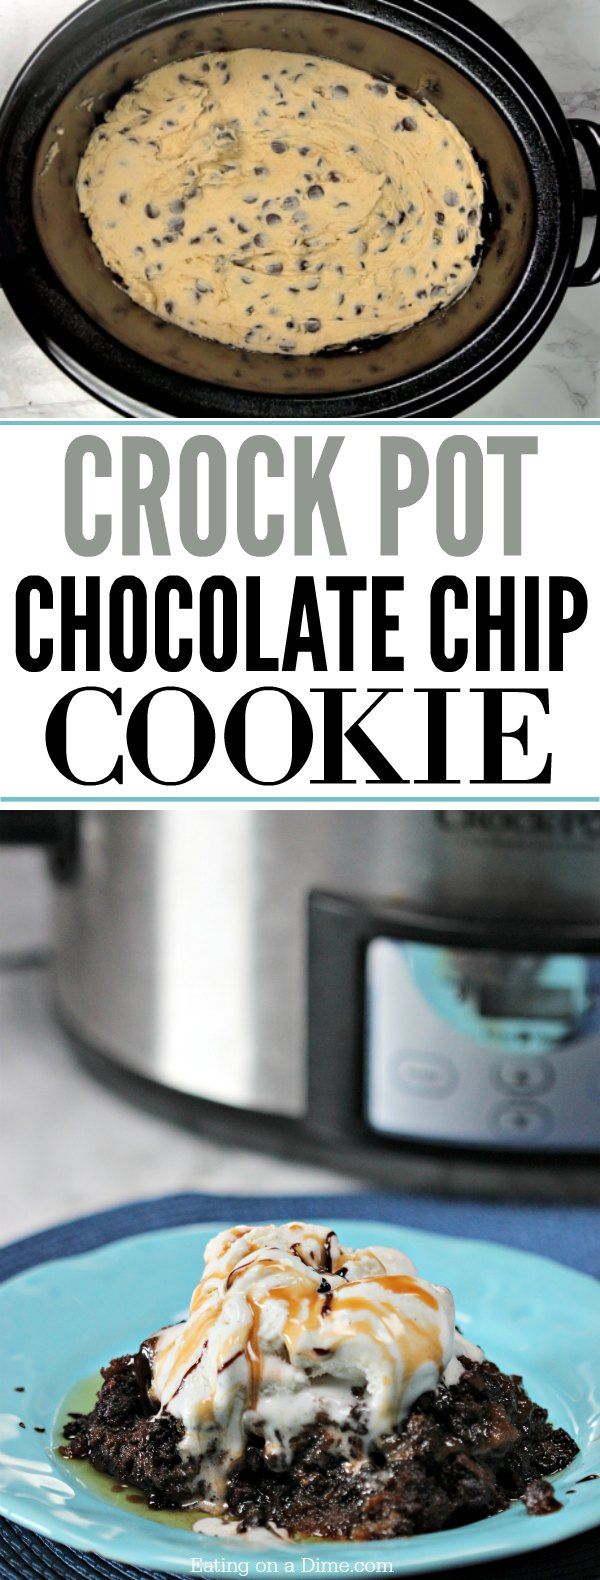 Try this easy crockpot chocolate chip cookie recipe. No need to heat up the kitchen with this quick and easy crock pot dessert! Serve with ice cream!